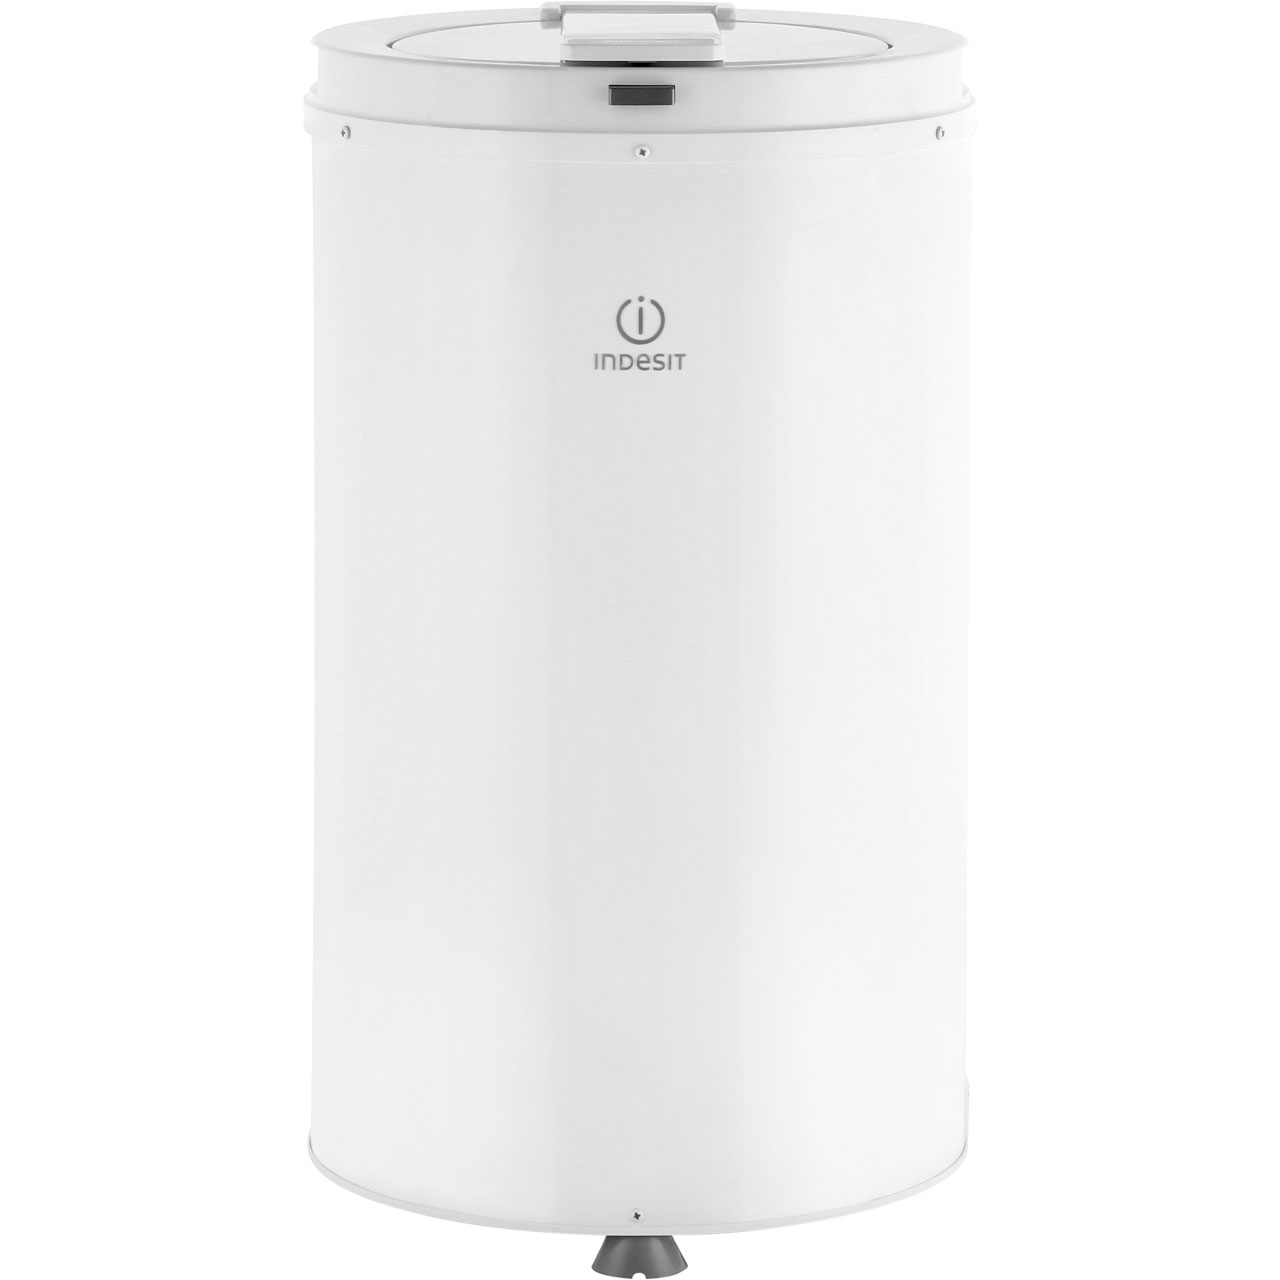 Indesit ISDP429 Free Standing Spin Dryer in White